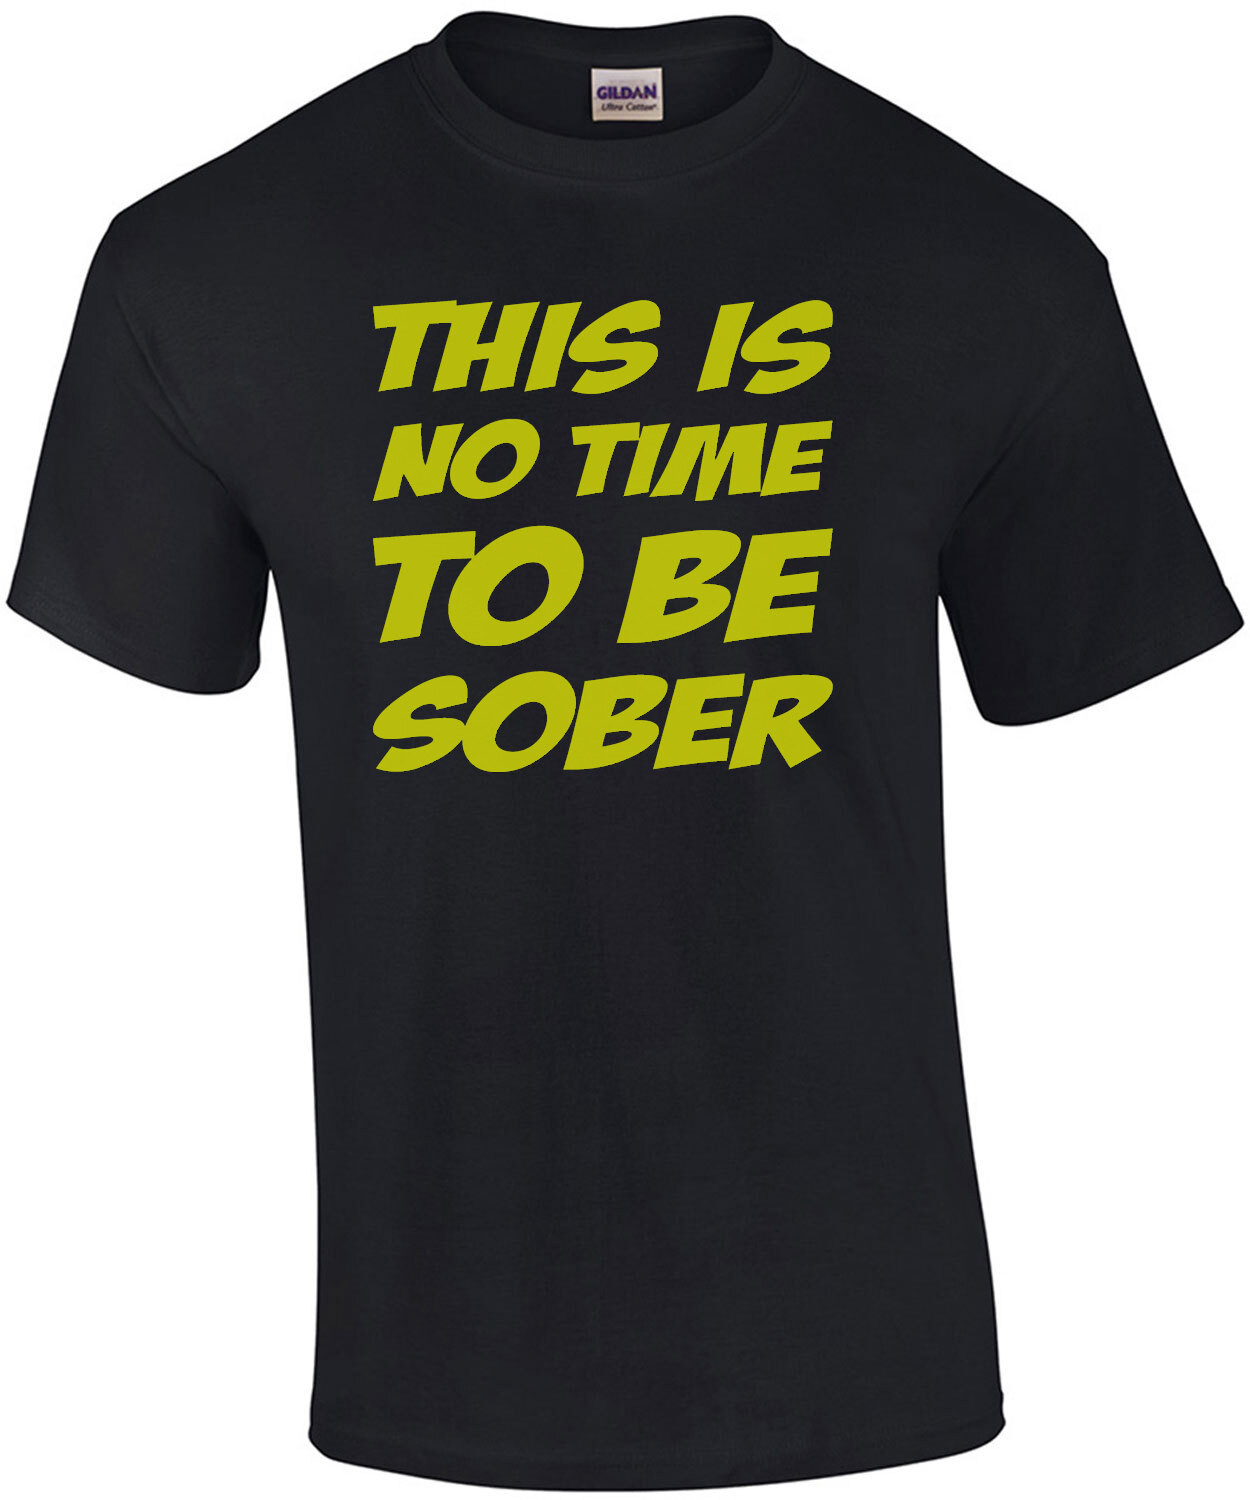 This is no time to be sober - drinking t-shirt